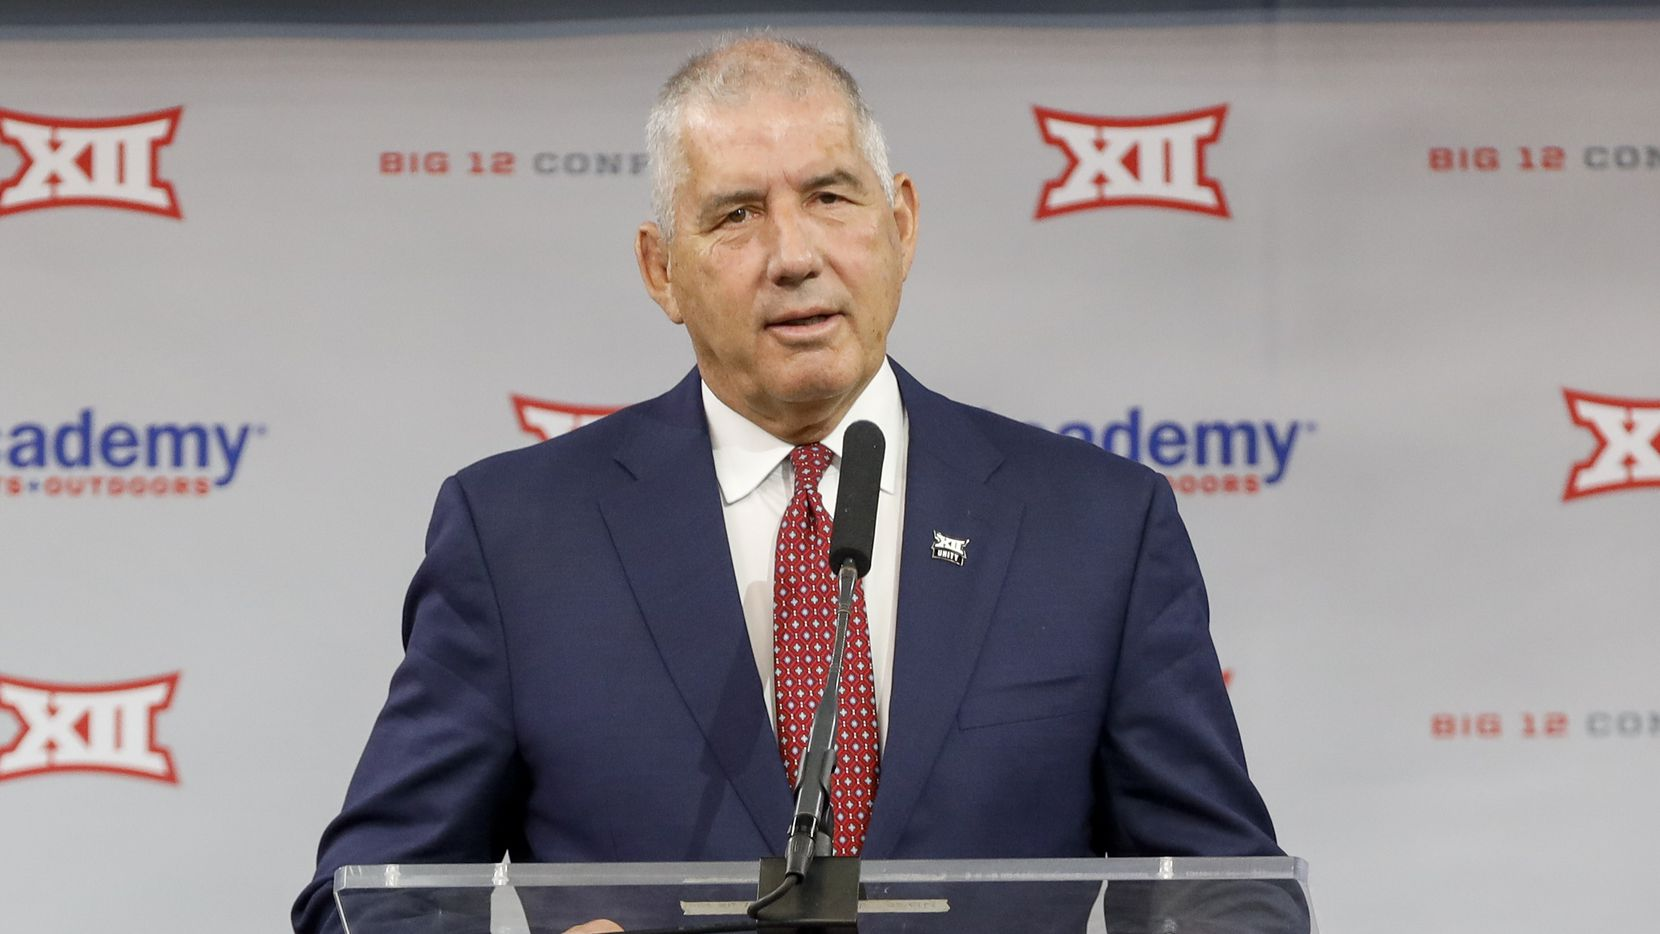 Big 12 Conference commissioner Bob Bowlsby speaks during the Big 12 Conference Media Days at AT&T Stadium on Wednesday, July 14, 2021, in Arlington.